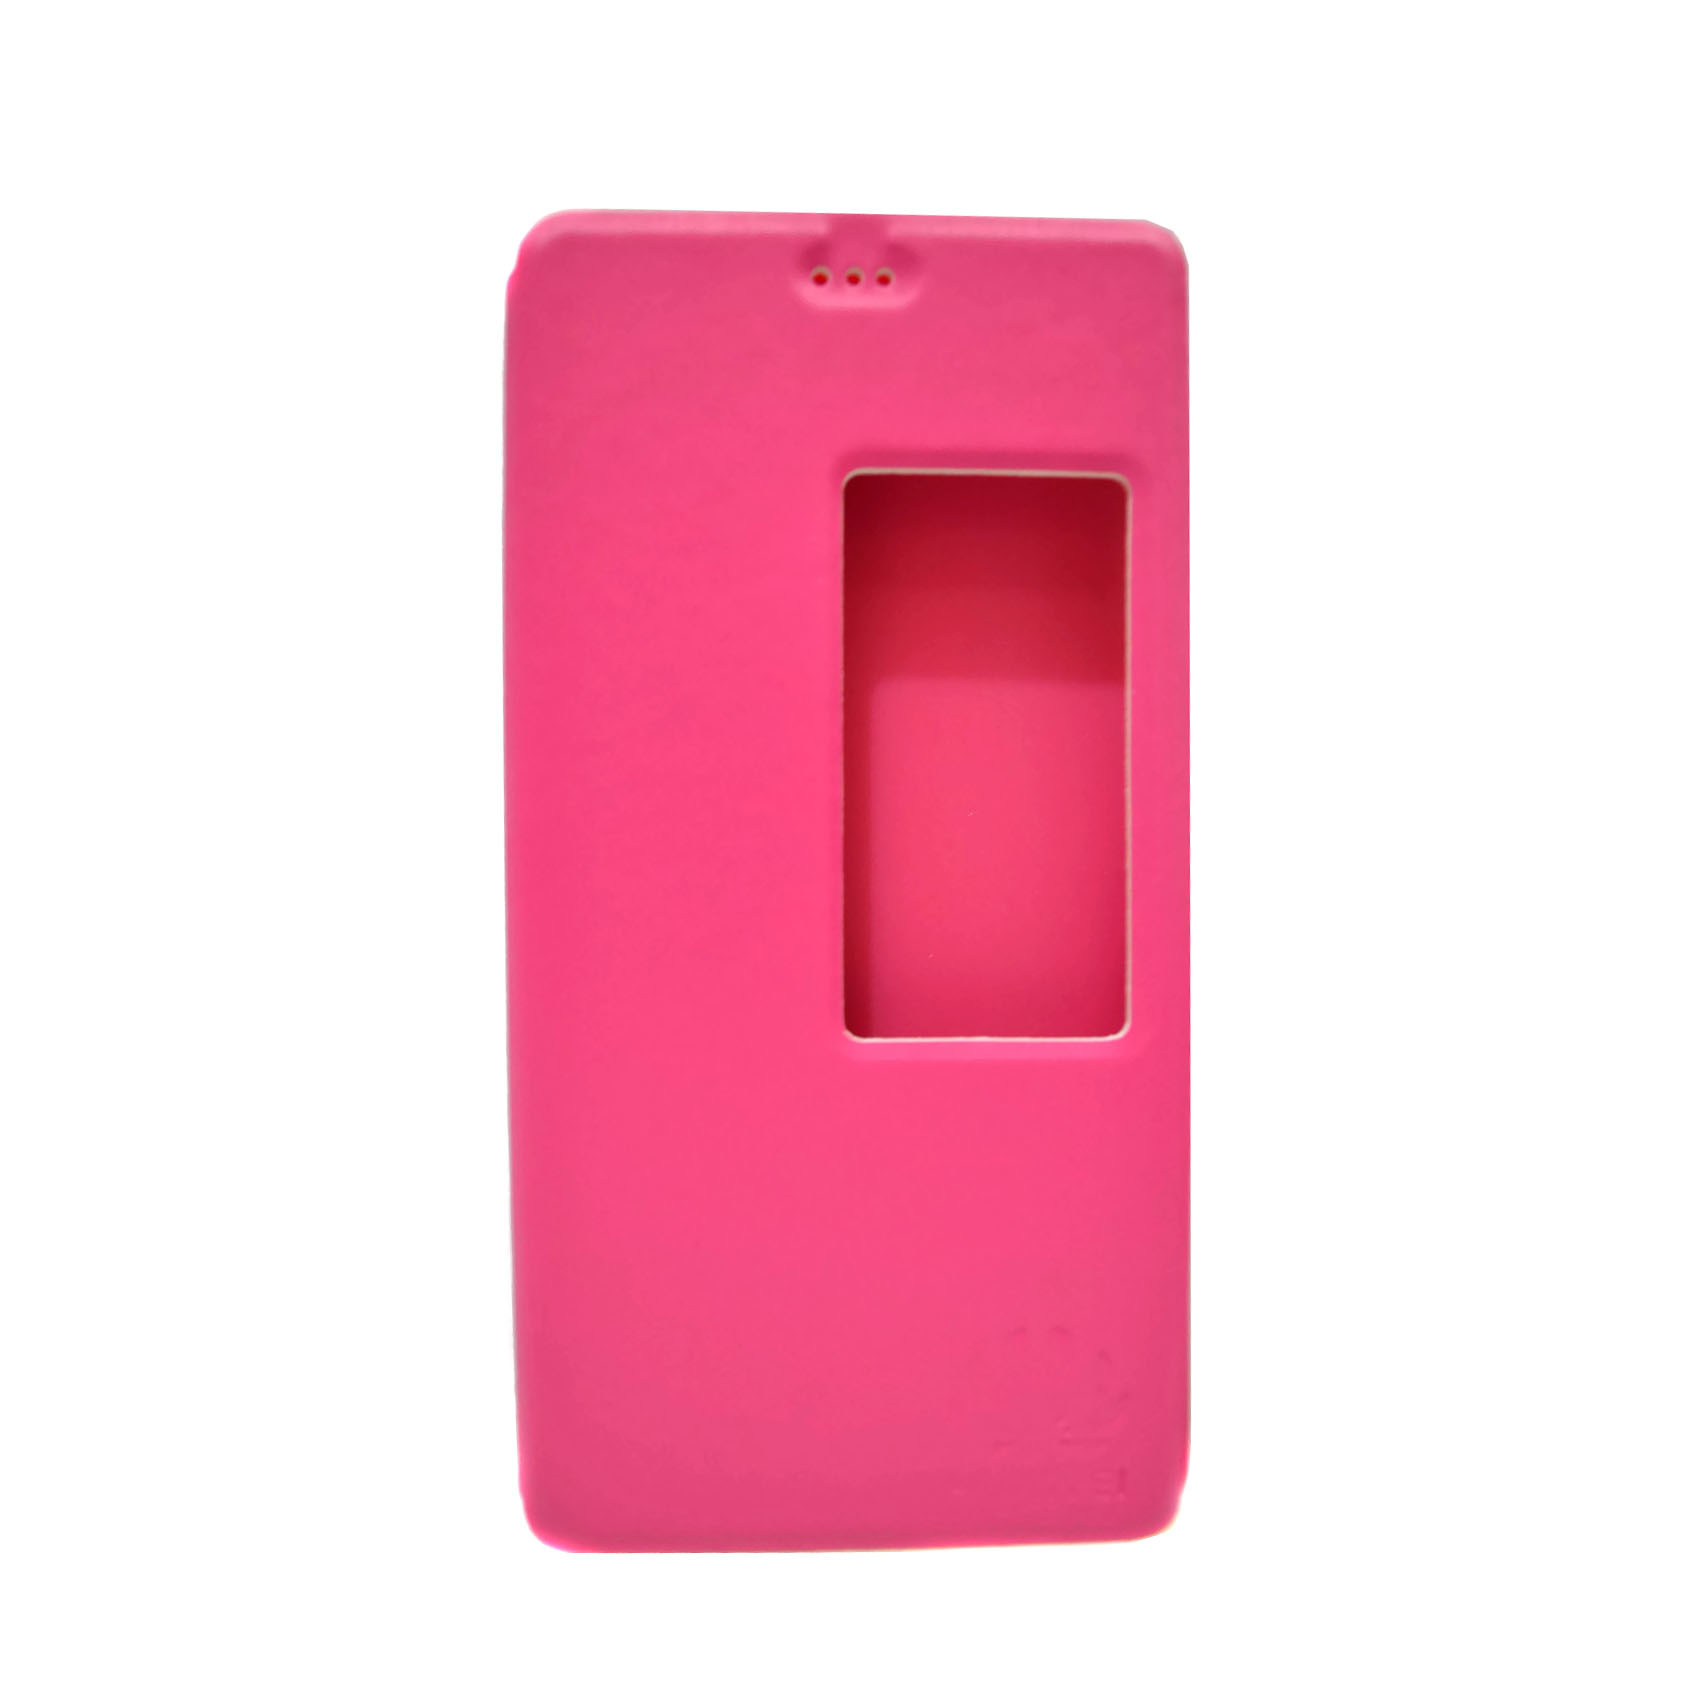 Huawei P8 Leather Case (Pink)